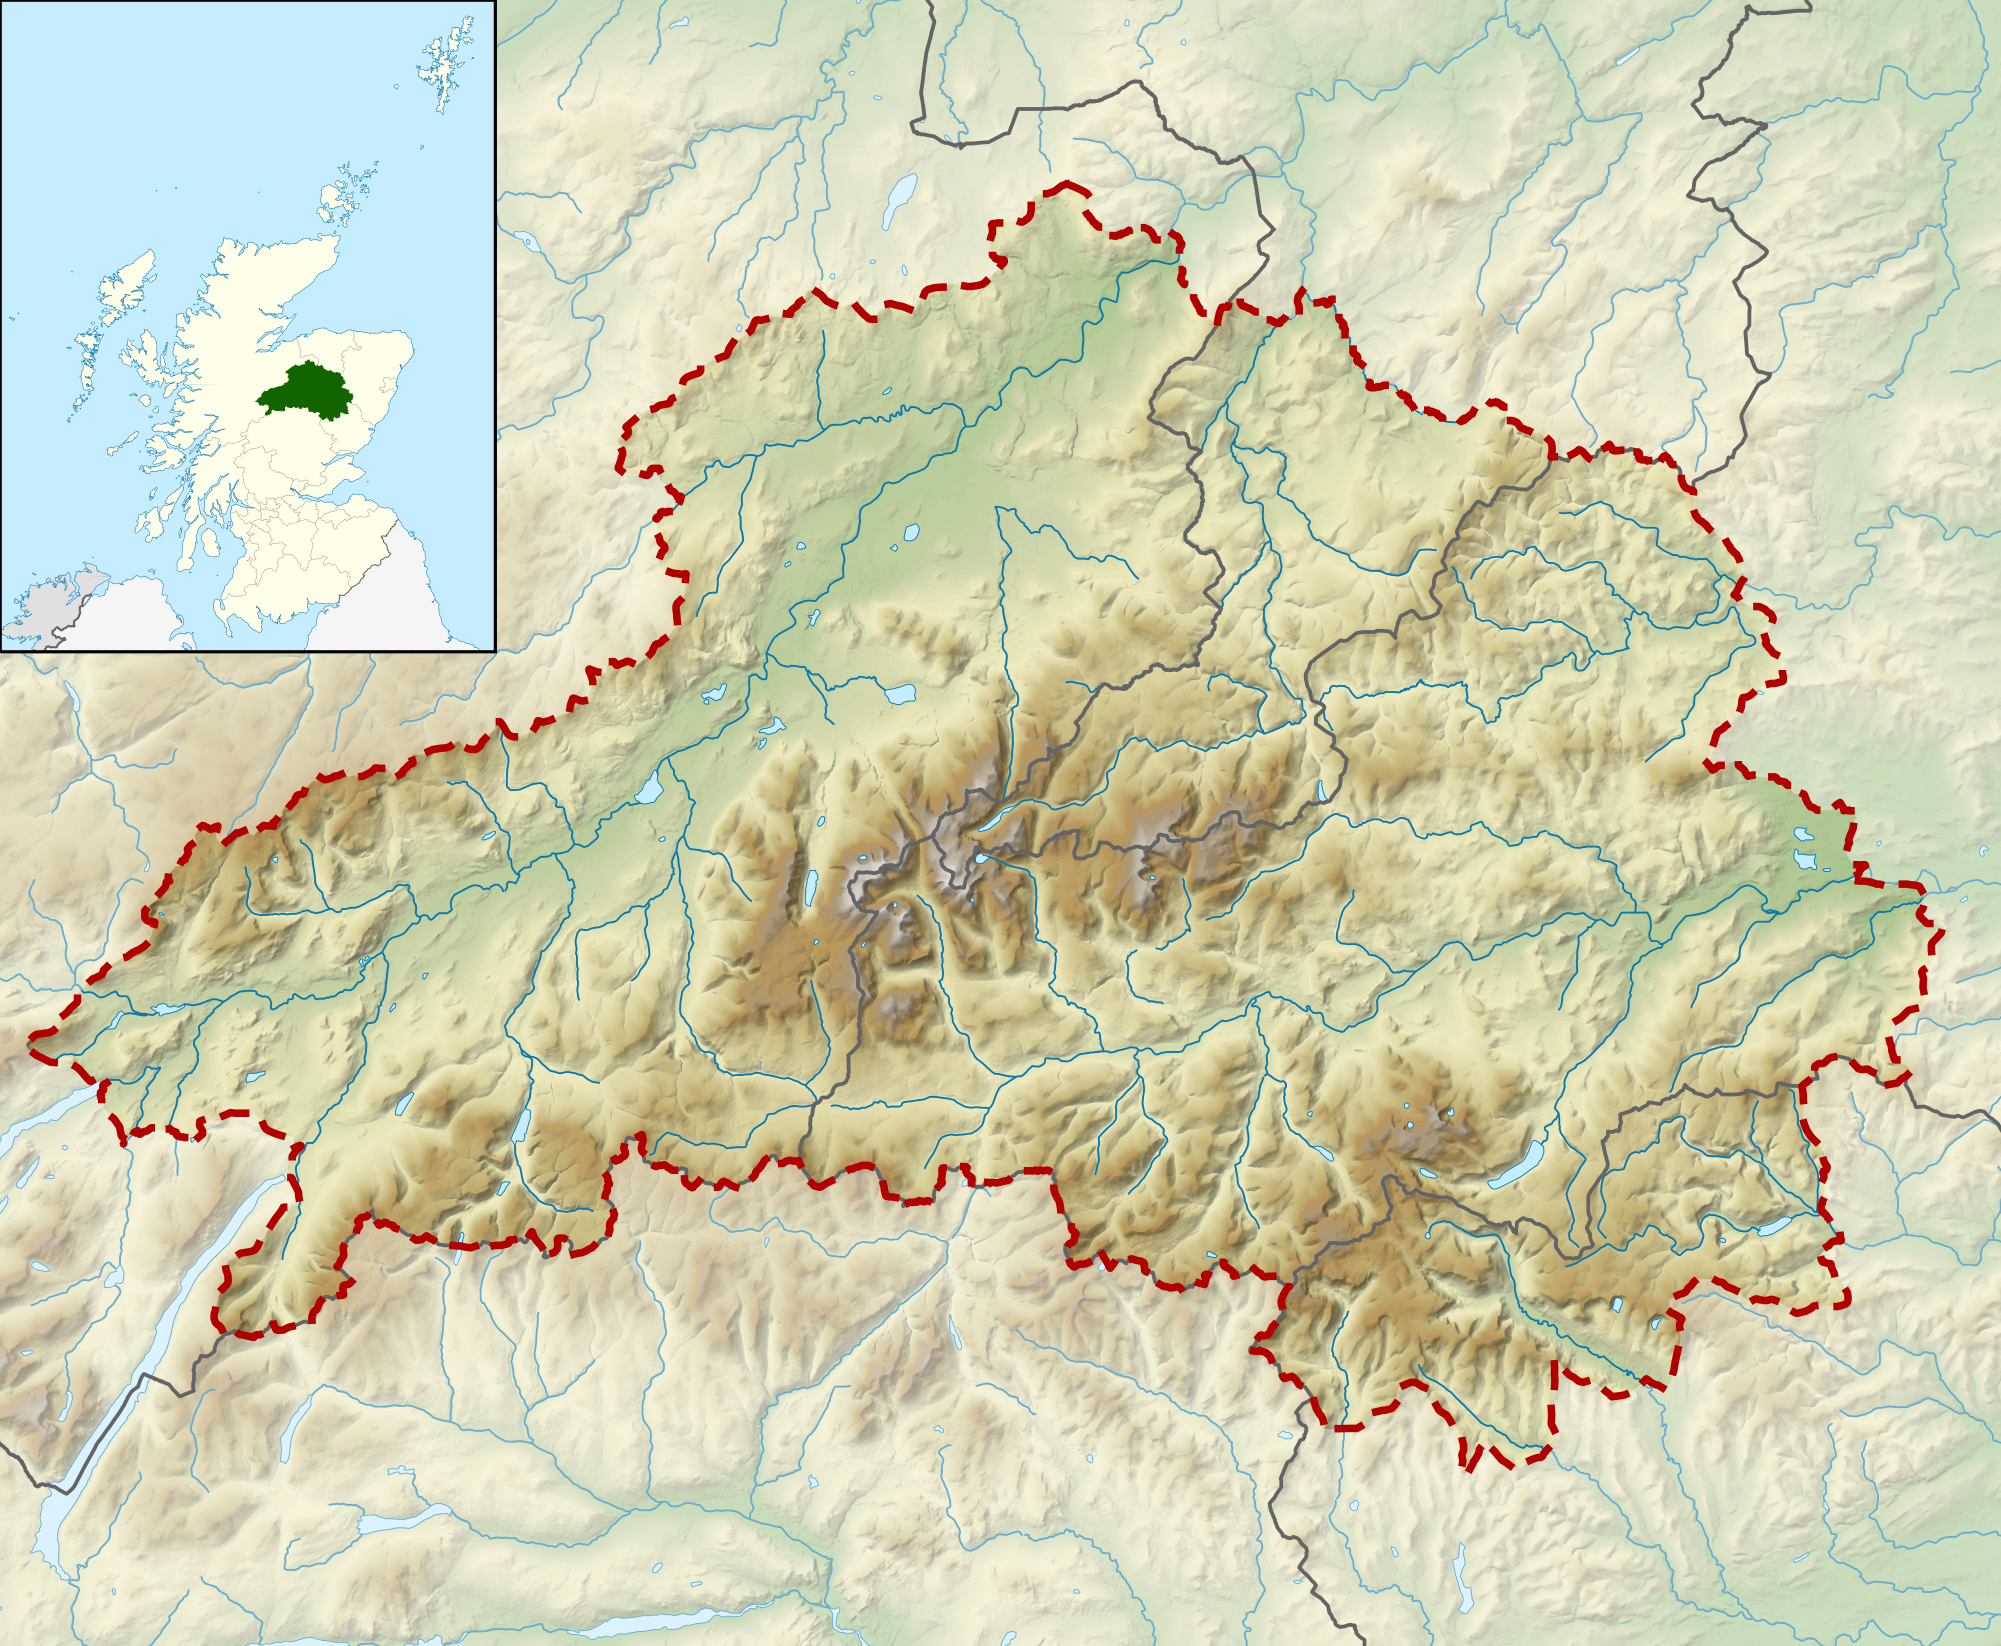 FileCairngorms National Park UK Relief Location Mappng - National parks locations map